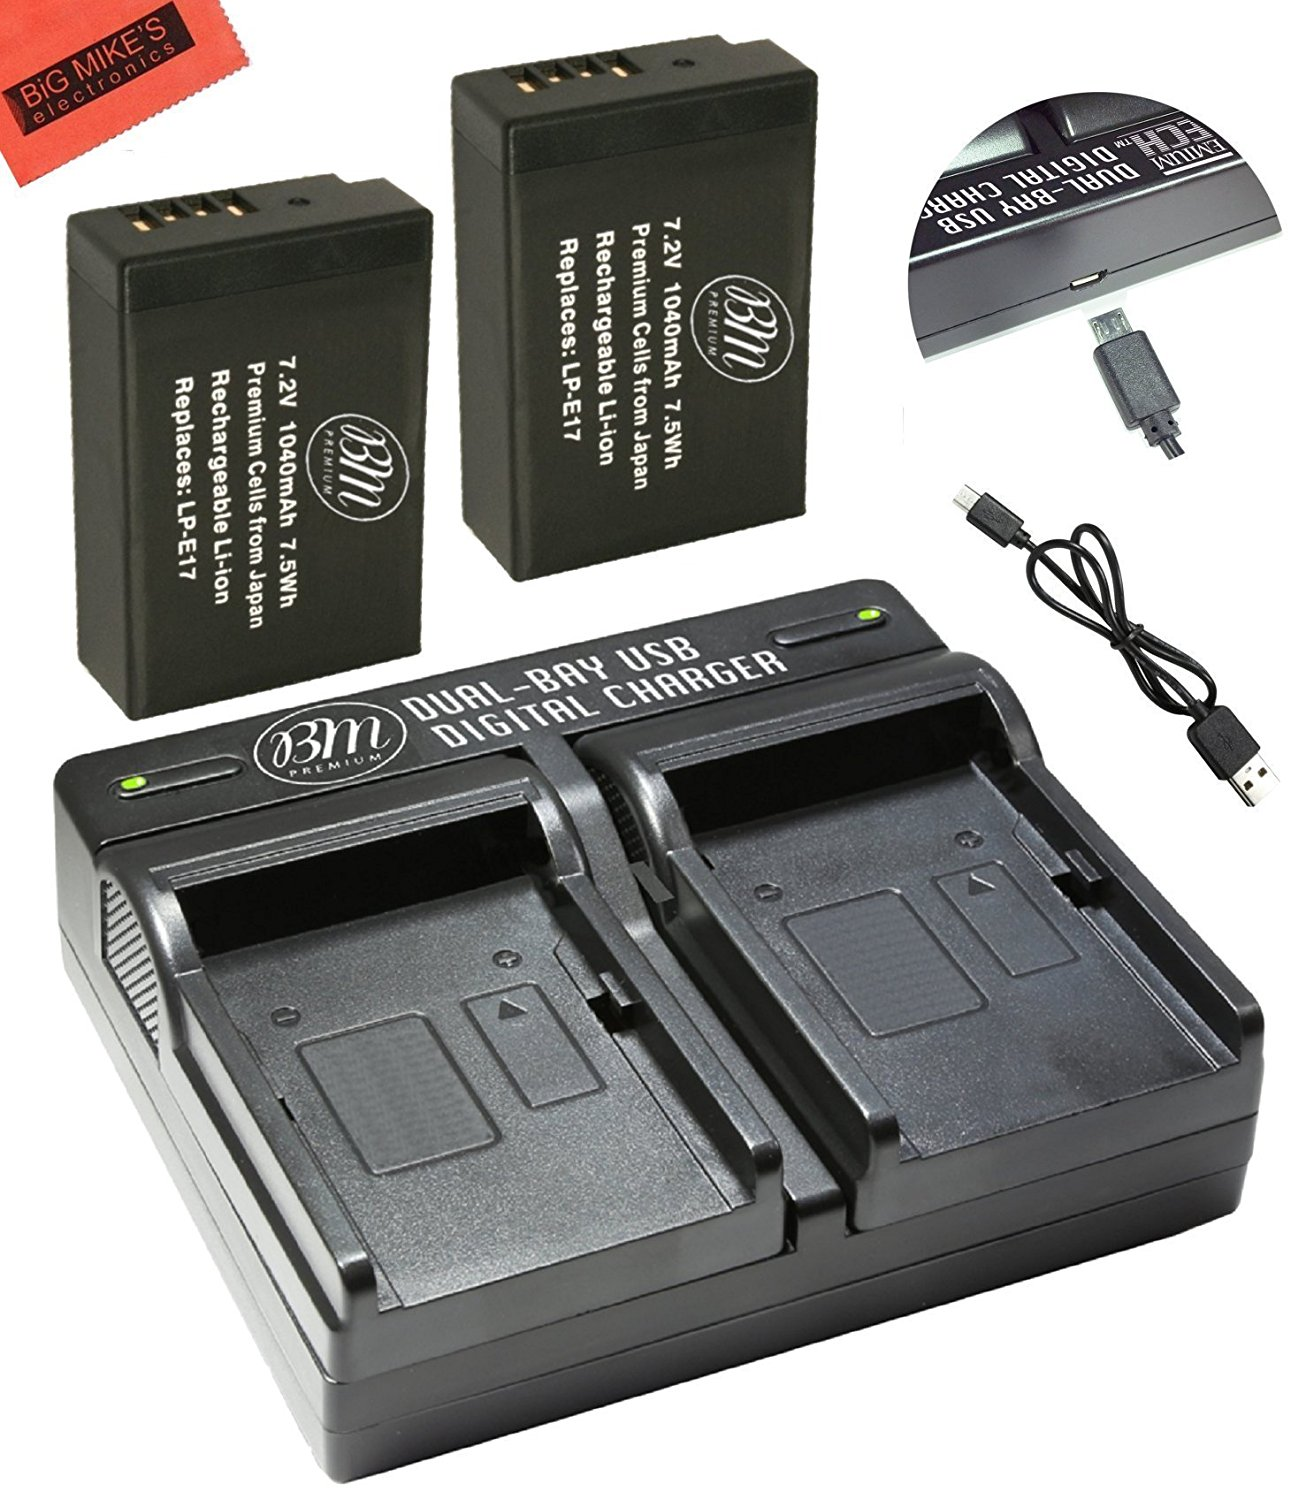 Cordial Battery Charger Canon Eos Eos Rebel Rebel Eos Eos Eos Bm Premium Battery Charger Canon Canon T6i Battery Buy Canon T6i Battery Target Batteries Batteries Bm Premium dpreview Canon T6i Battery